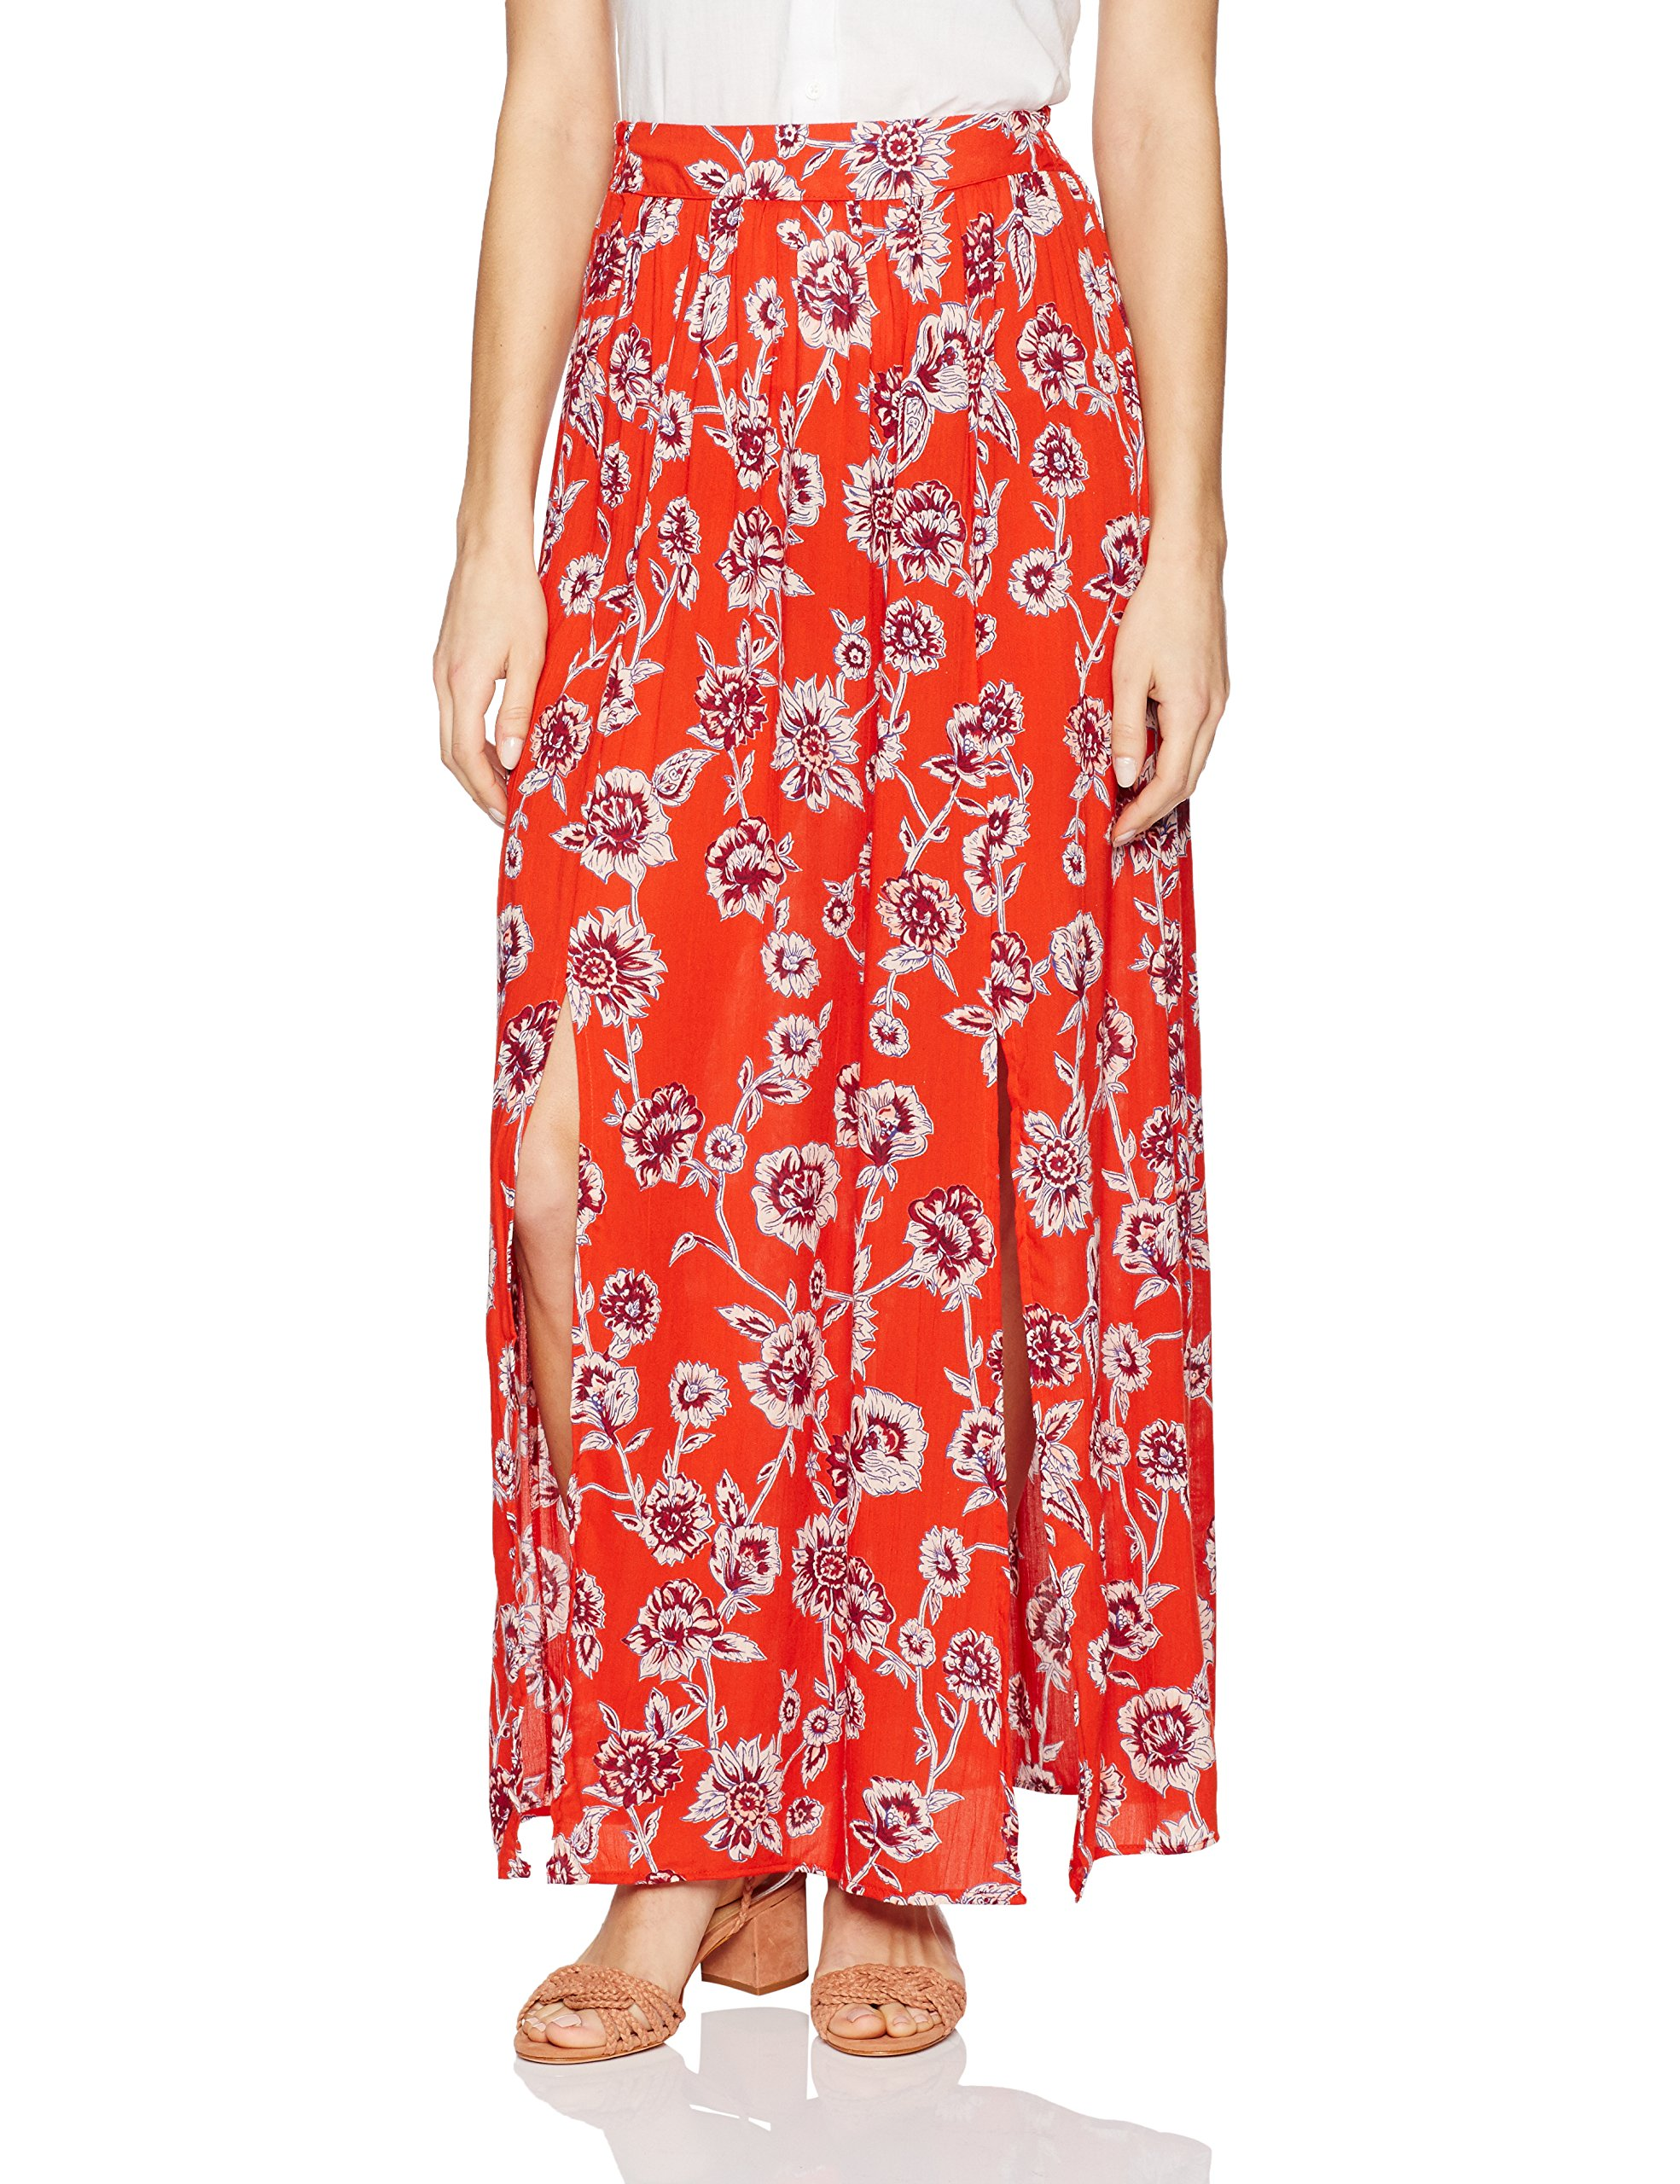 Angie Women's Print Front Slit Maxi Skirt, Red, Small